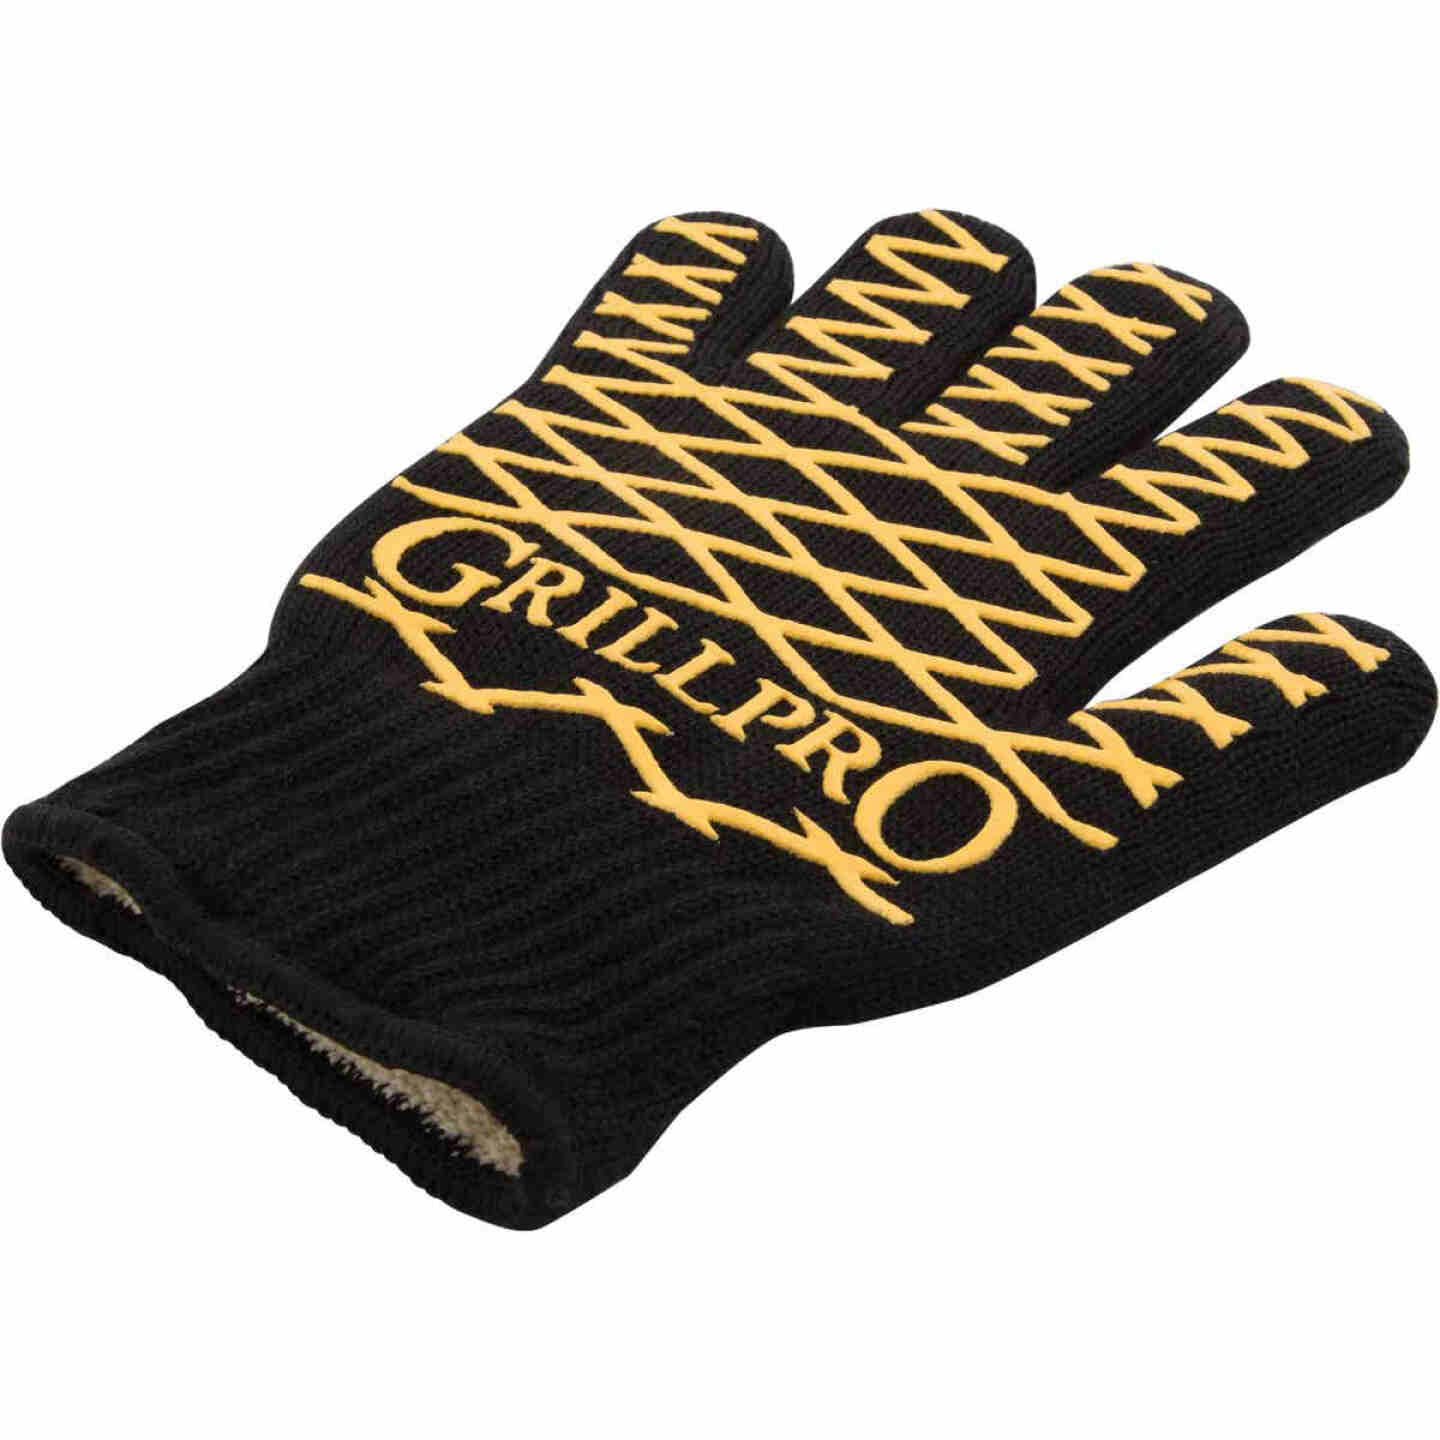 GrillPro One Size Fits Most Black & Yellow Heat Resistant Barbeque Mitt Image 1